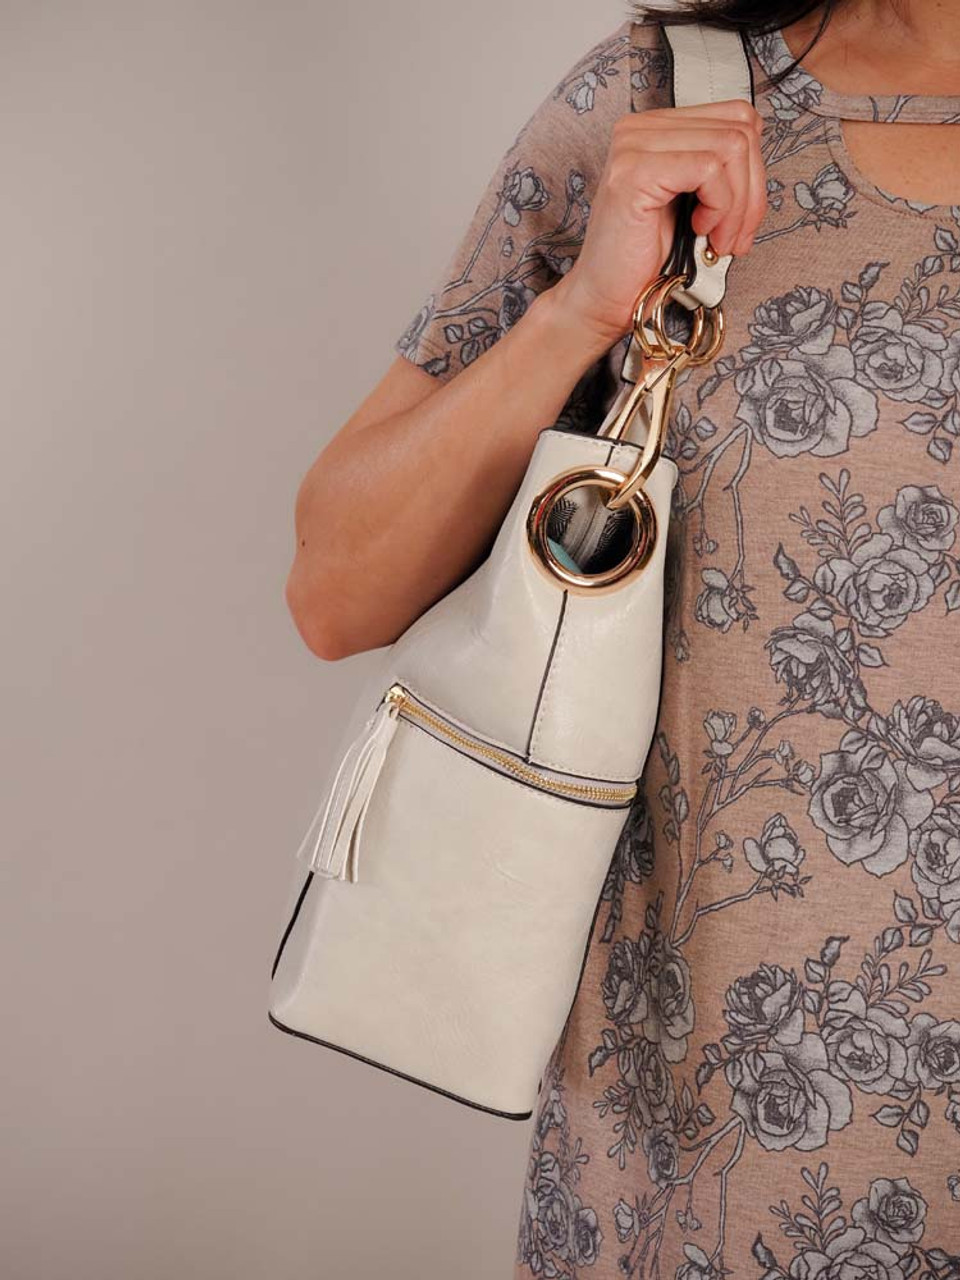 Soft greyish ivory vegan leather tote with black edging at seams and gold tone hardware. Zipper close at top and side pockets with tasseled zipper close. Choose to use the shoulder strap or the adjustable crossbody strap. Inside is fully lined and features two slip pockets, 2 zipper pockets, and a small compartment to keep your items accessible.